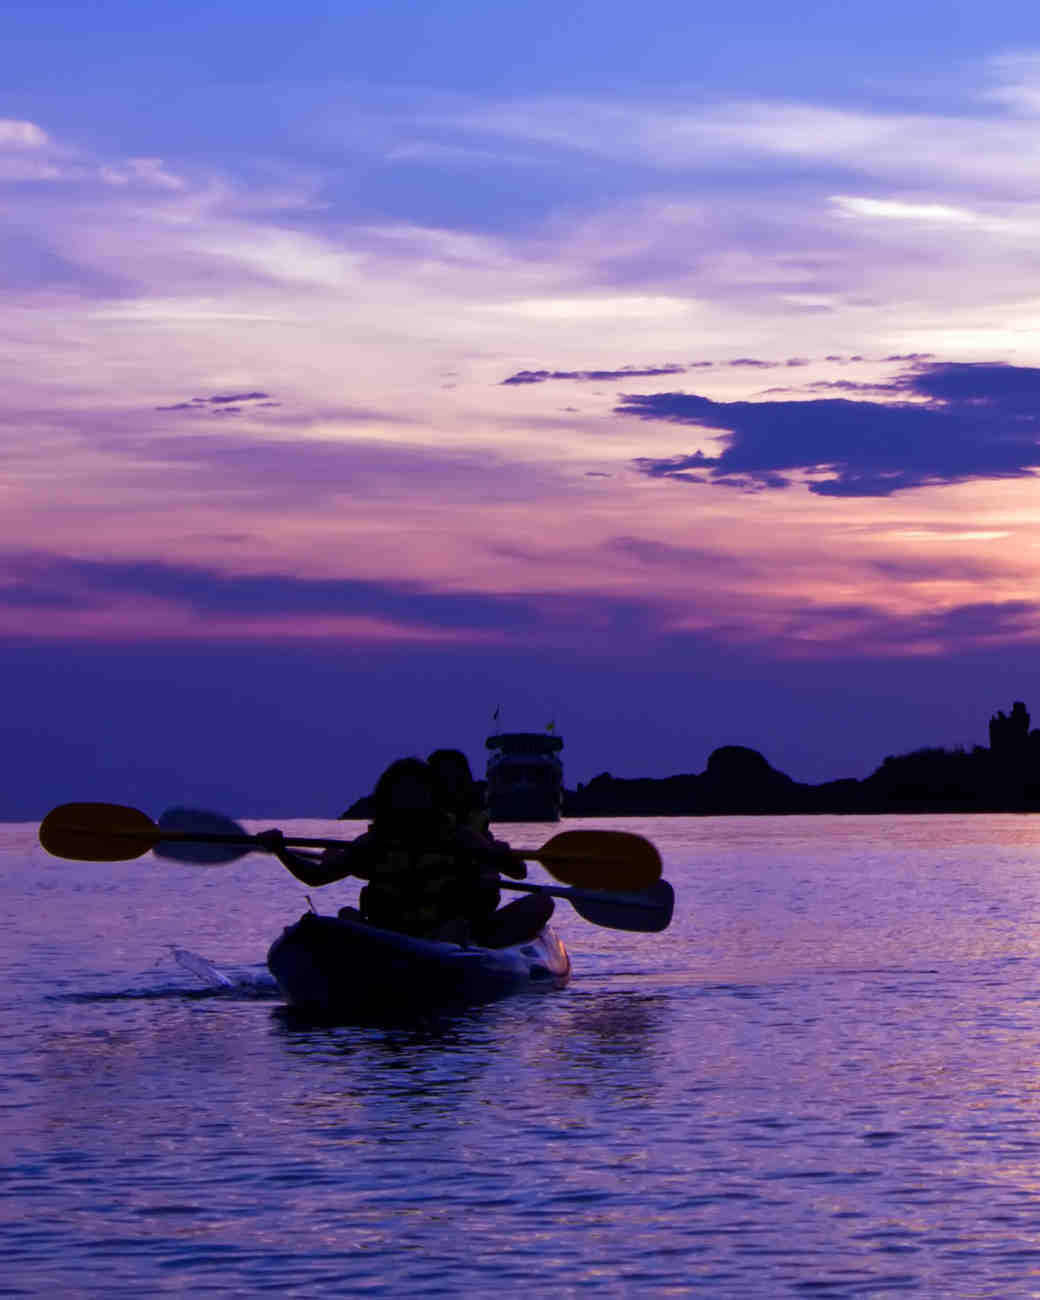 Night Kayaking in Puerto Rico